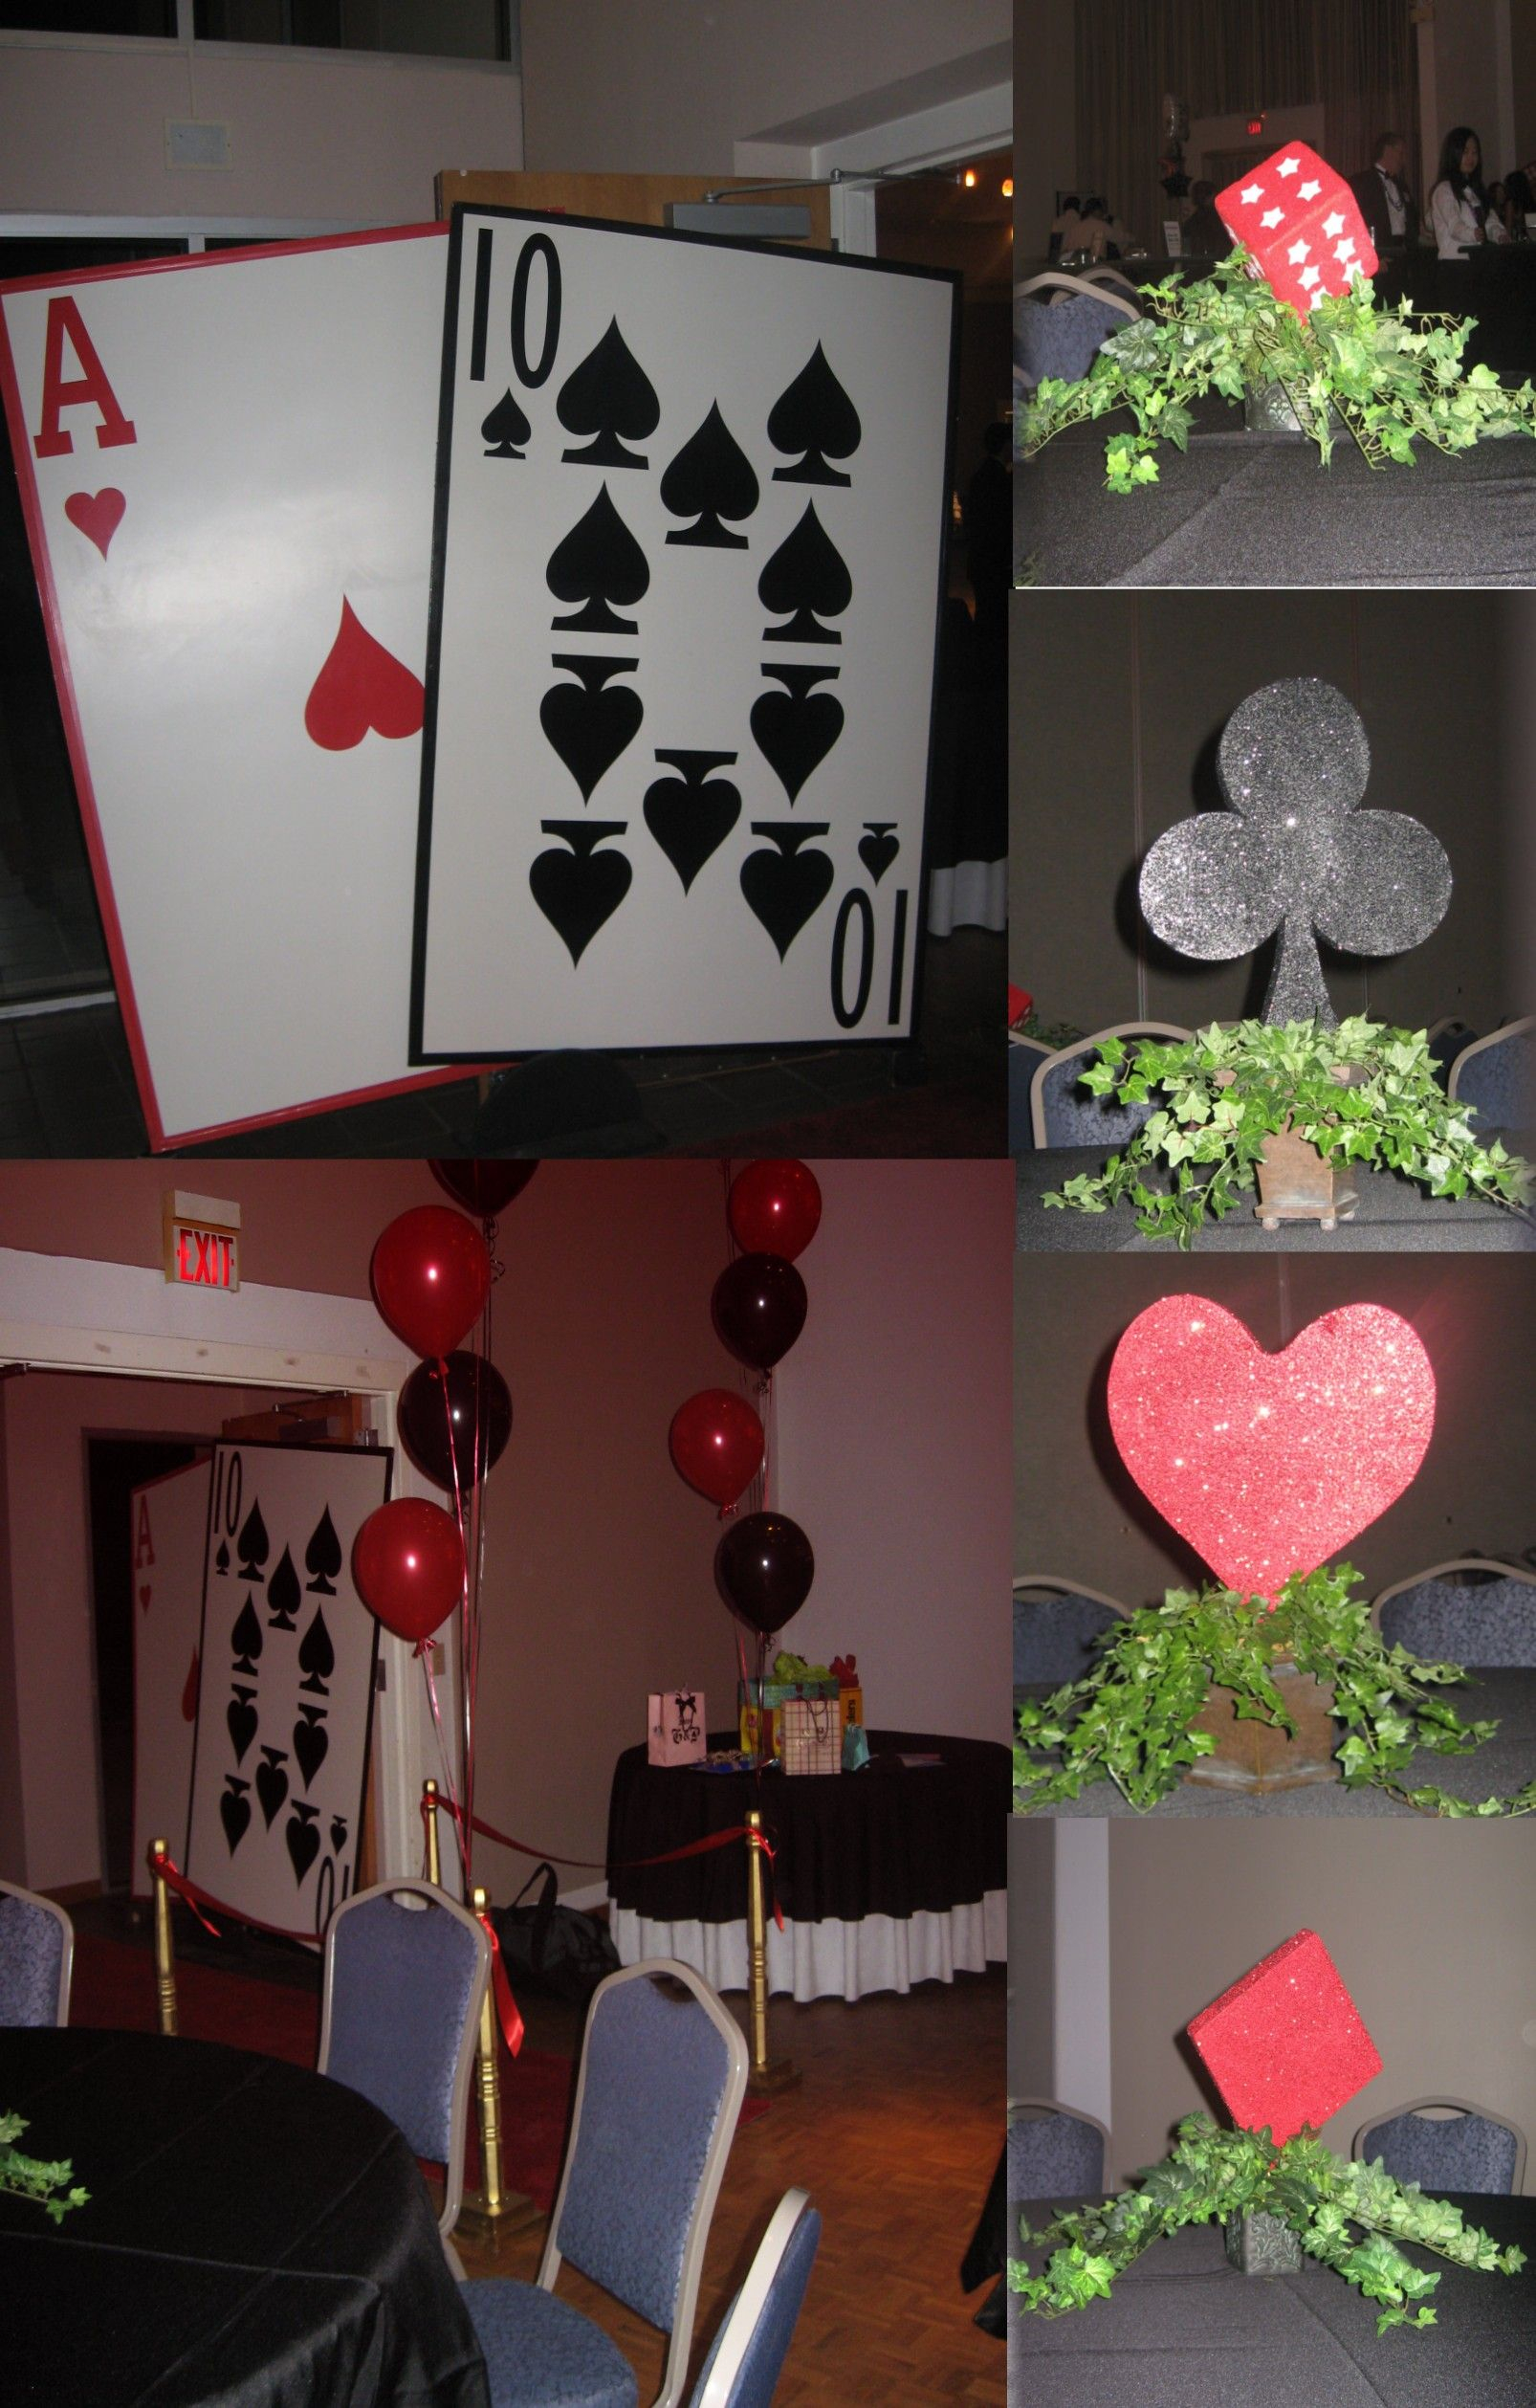 Elite Diy Casino Party Decorations | How To Make A Budget Diy Poker Theme in Awesome Casino Theme Party Decorations